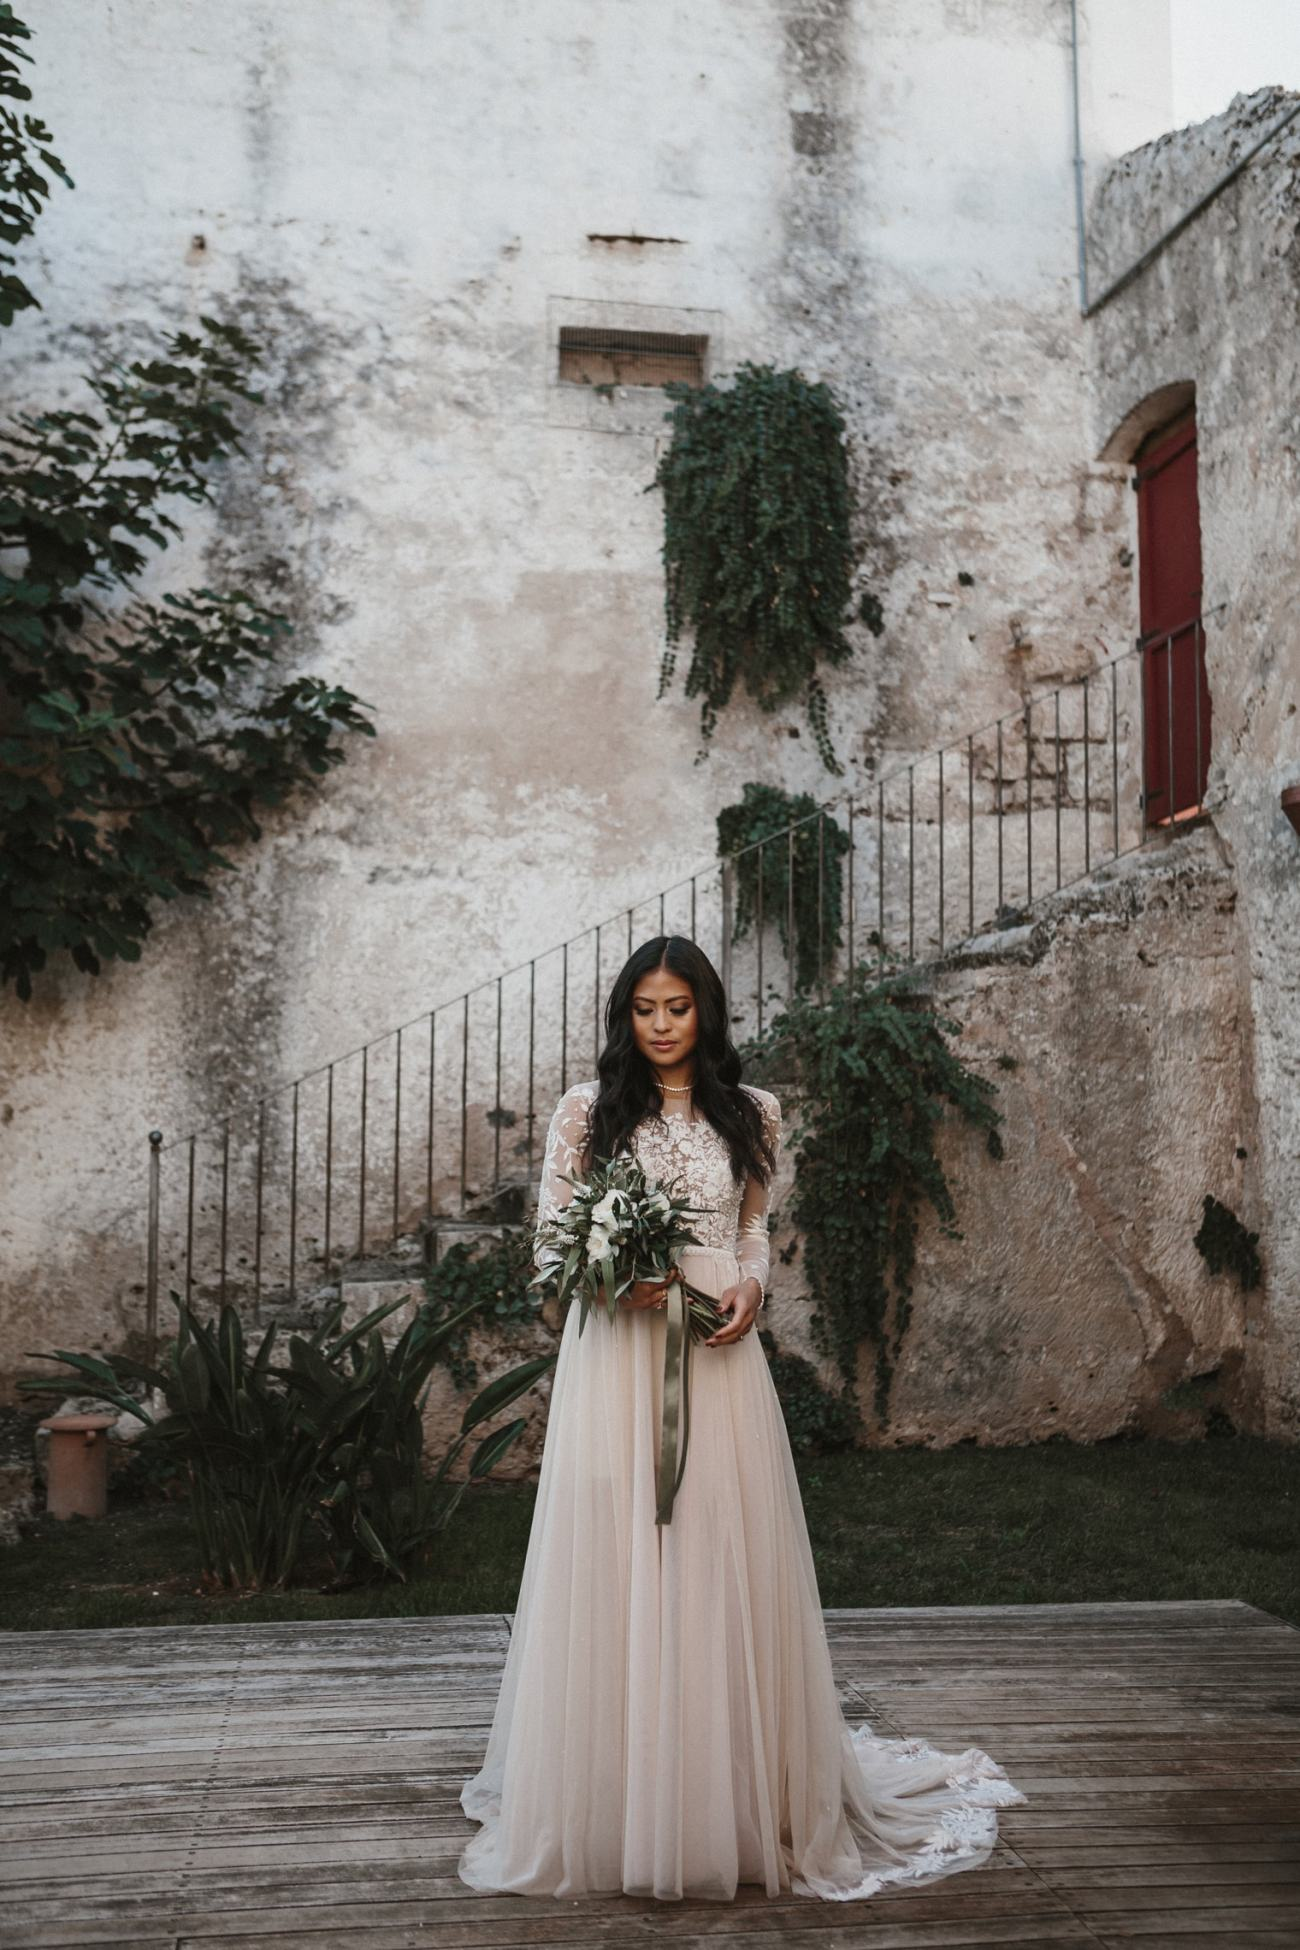 Apulian bride wearing beautiful Hermione de paula gown in italy for destination wedding